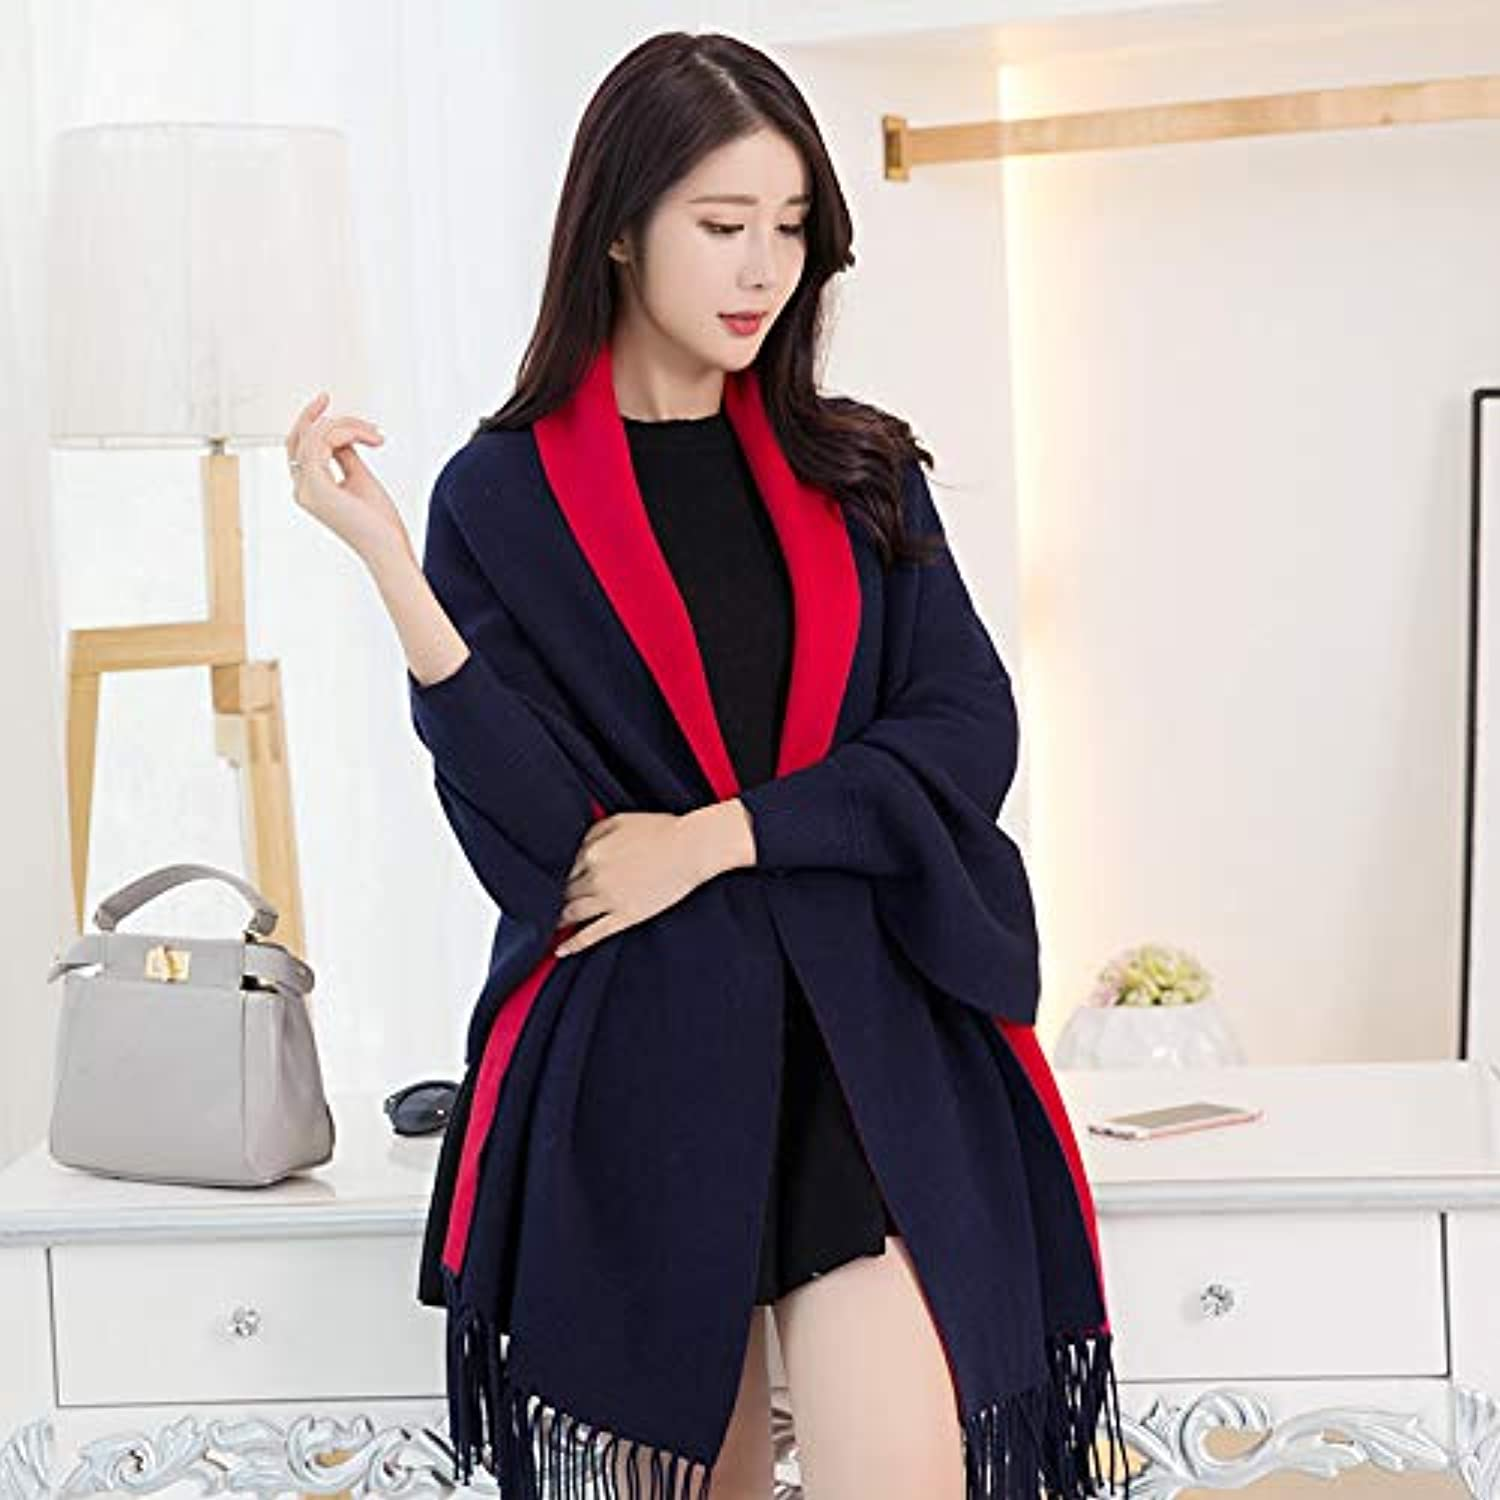 JINGB Home AirConditioned Room with Sleeves Shawl Female Summer Cloak Cloak Coat Scarf Dualuse Wild Autumn and Winter Super red (color   Black)